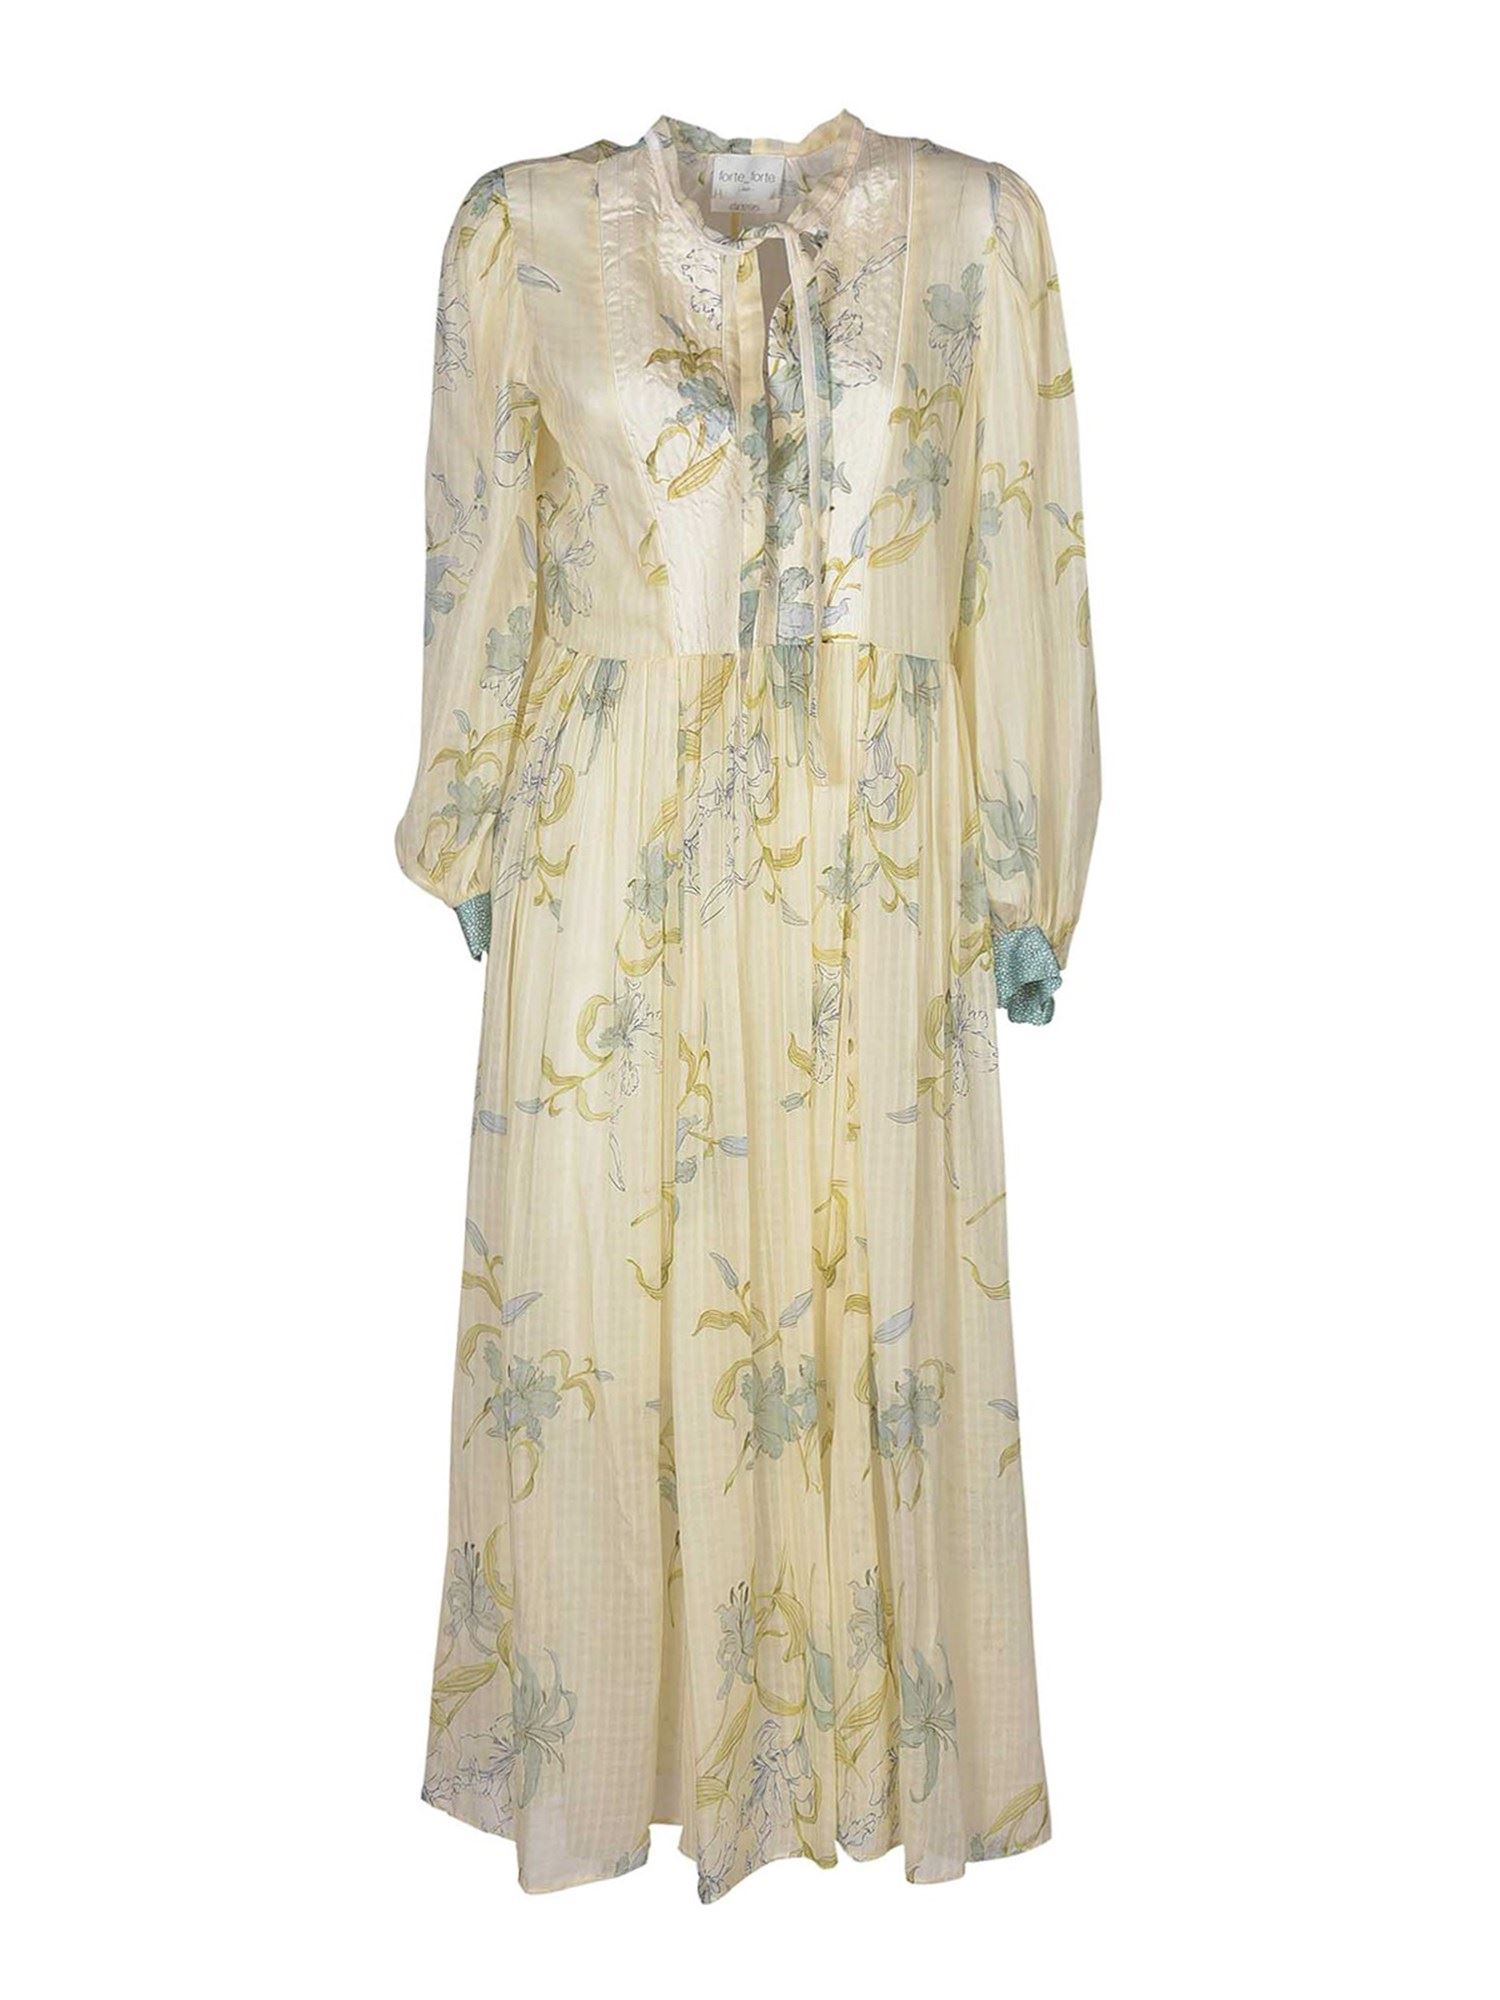 Forte Forte FLORAL PRINTED DRESS IN CREAM COLOR